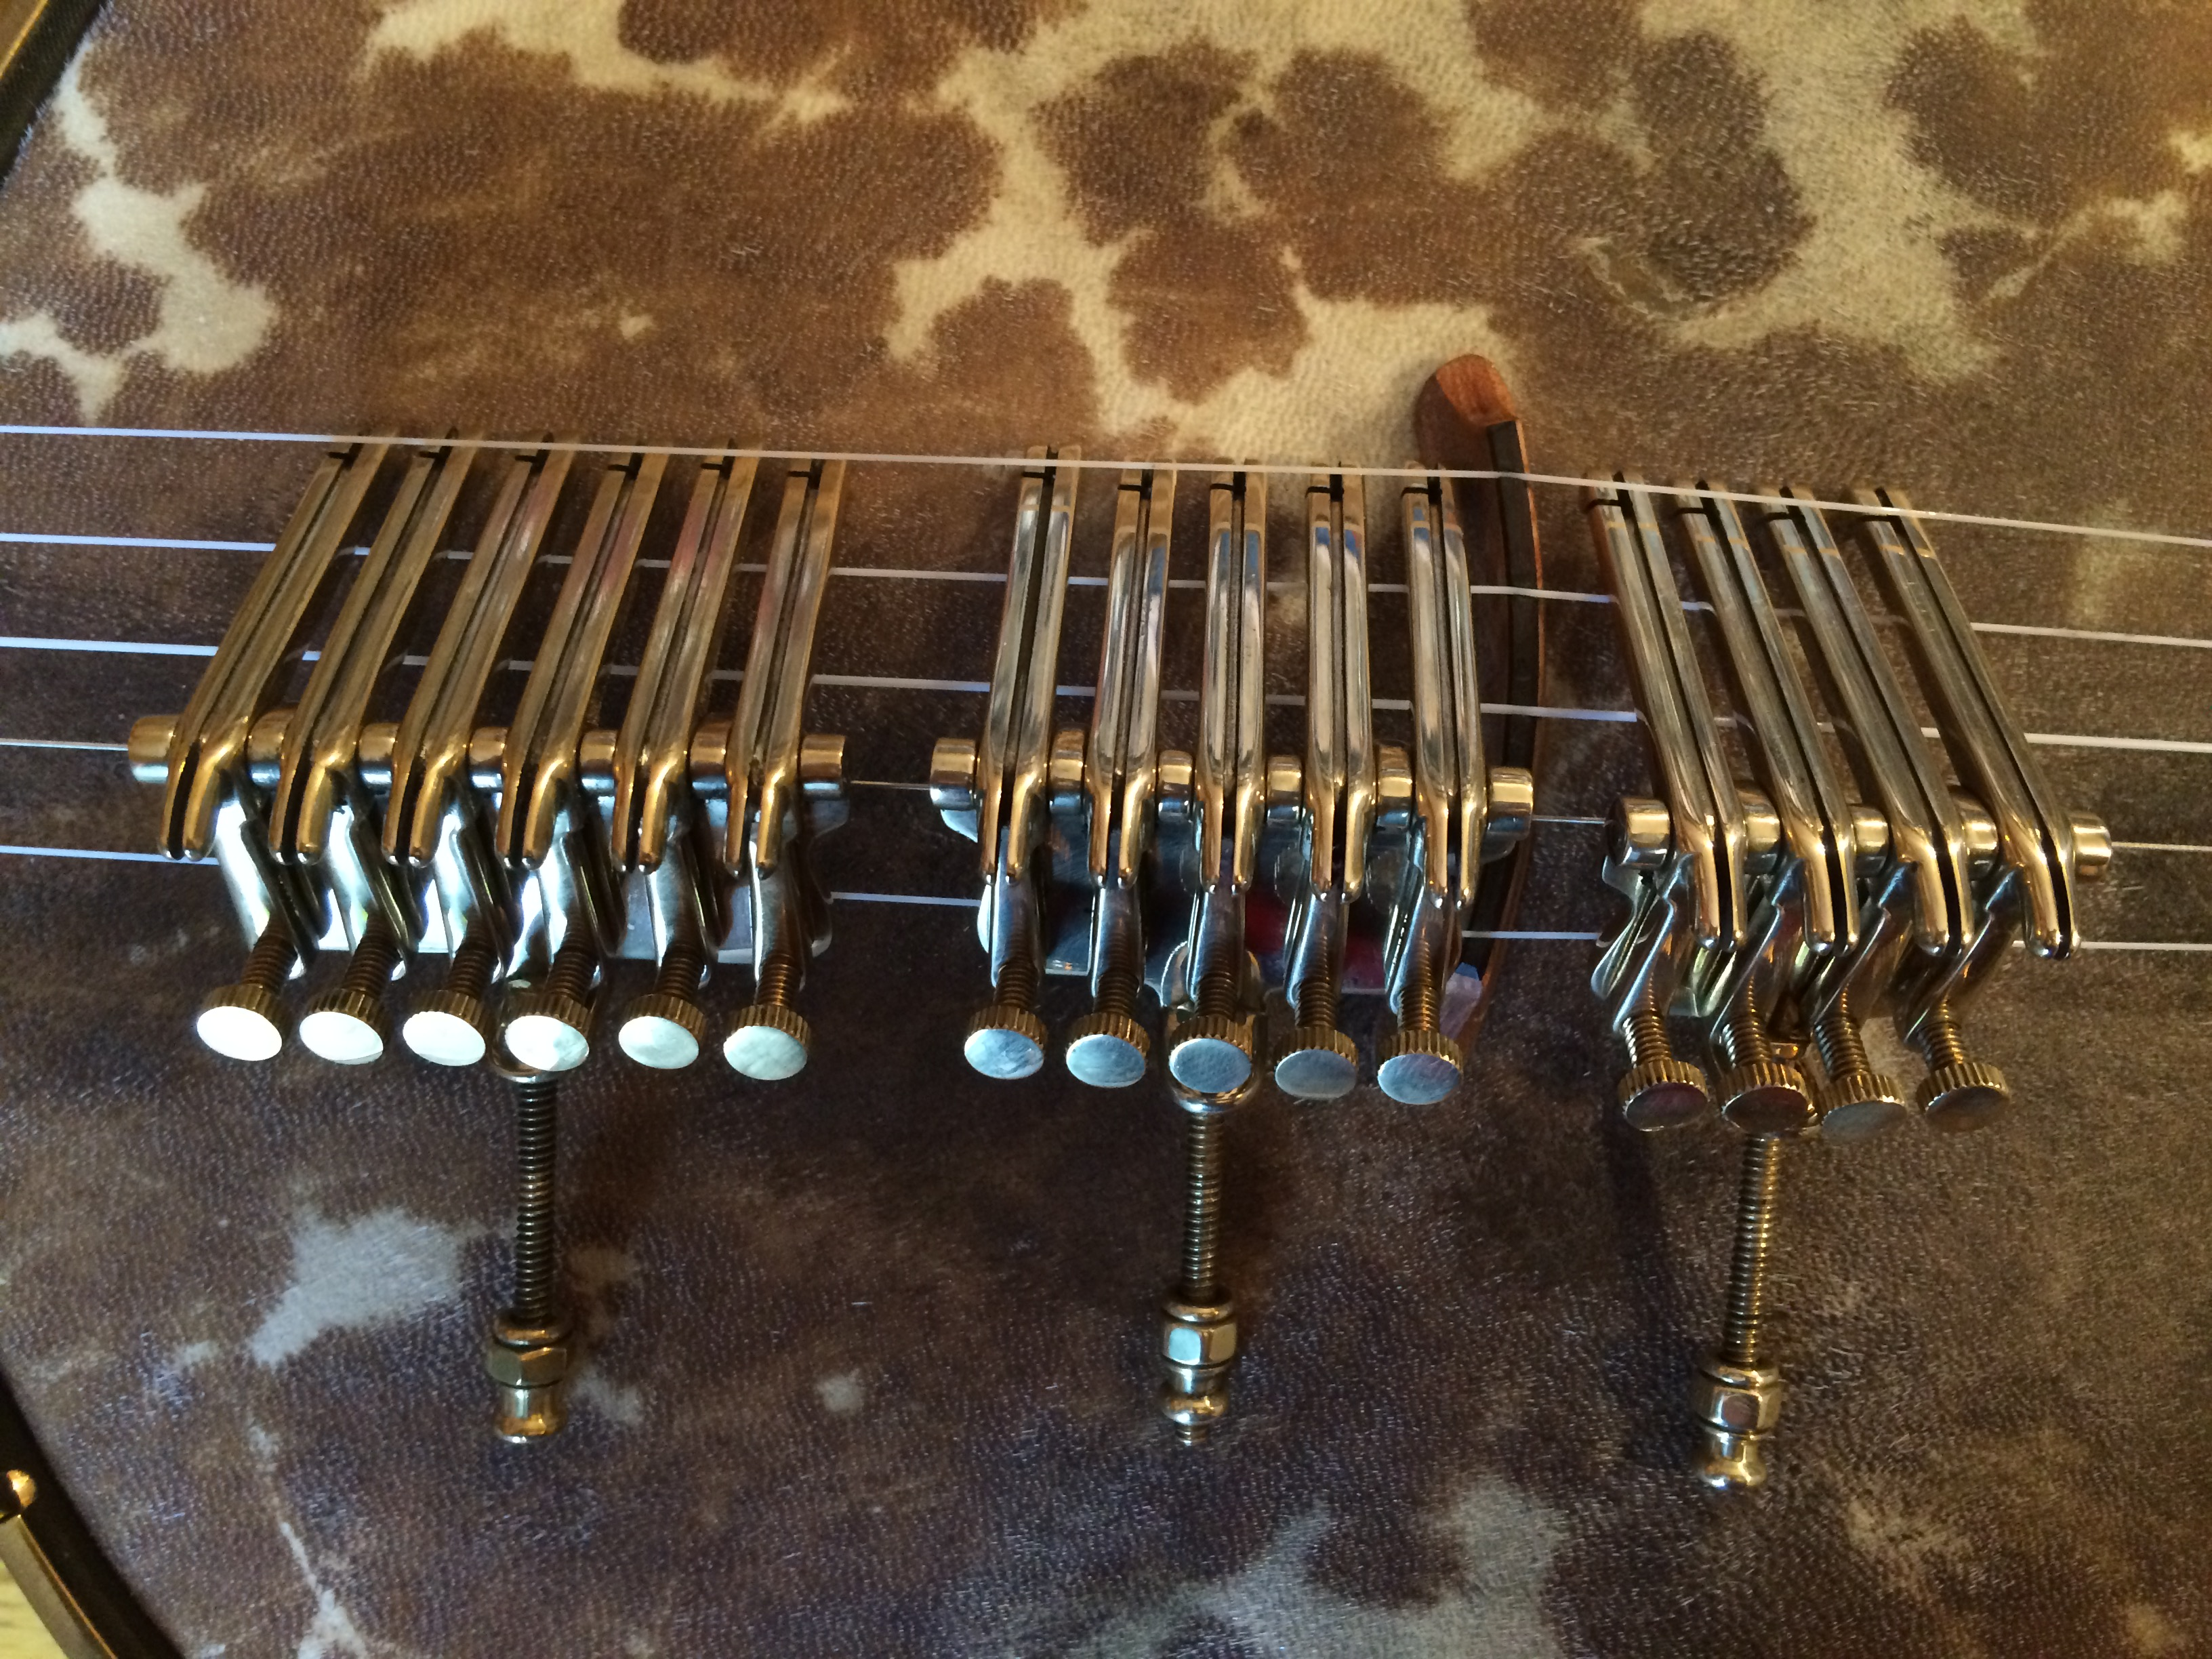 4 String, 5 String and 6 String Oettinger tailpieces.